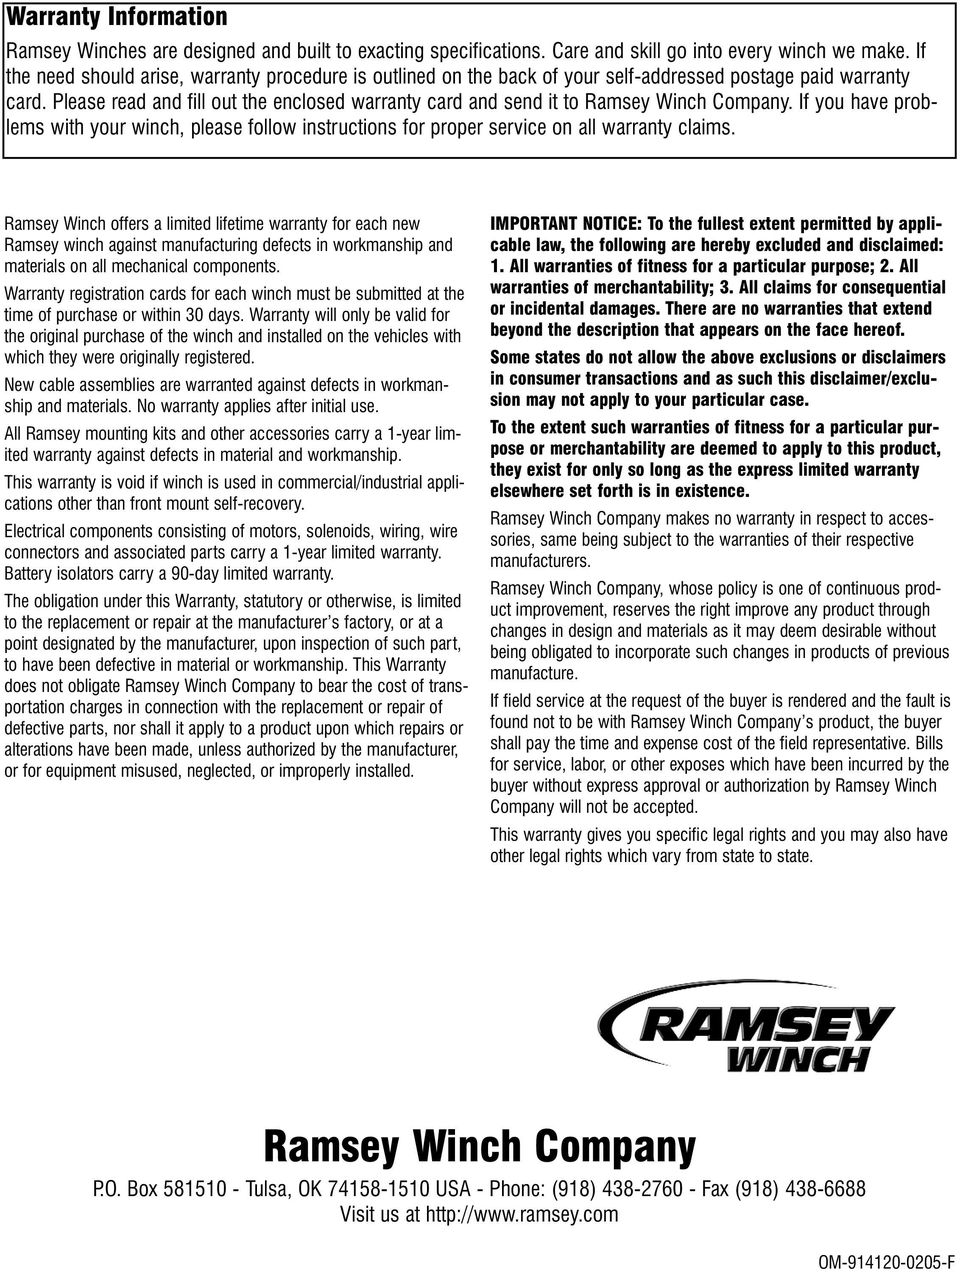 hight resolution of please read and fill out the enclosed warranty card and send it to ramsey winch company